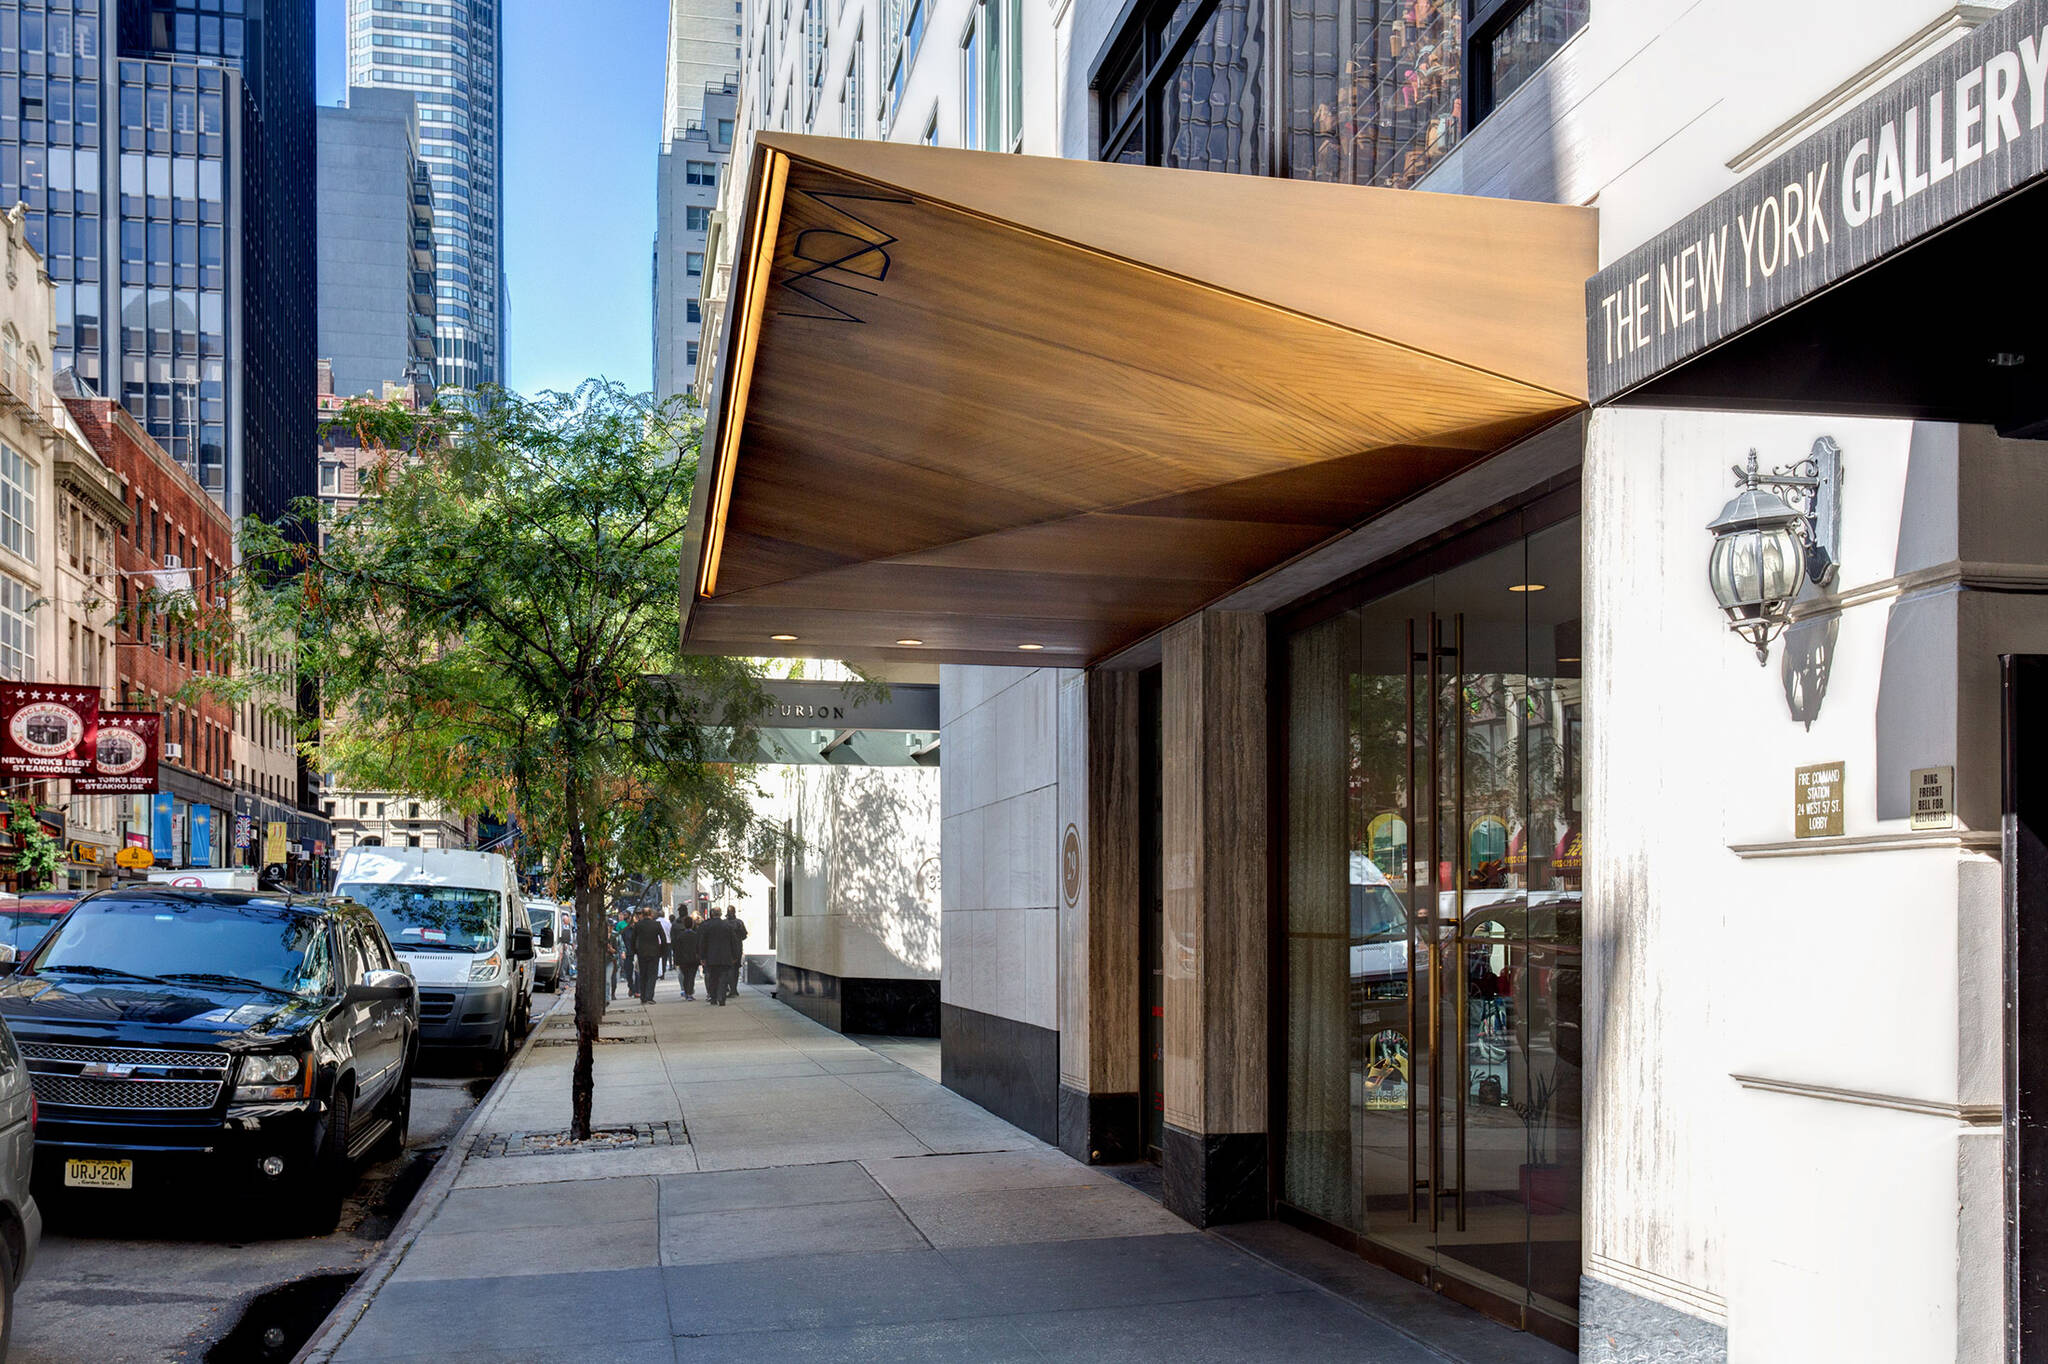 Sidewalk view of the Vida Shoes International canopy project for the shop located at 29 West 56th Street in Midtown, New York City designed by the architecture studio Danny Forster & Architecture